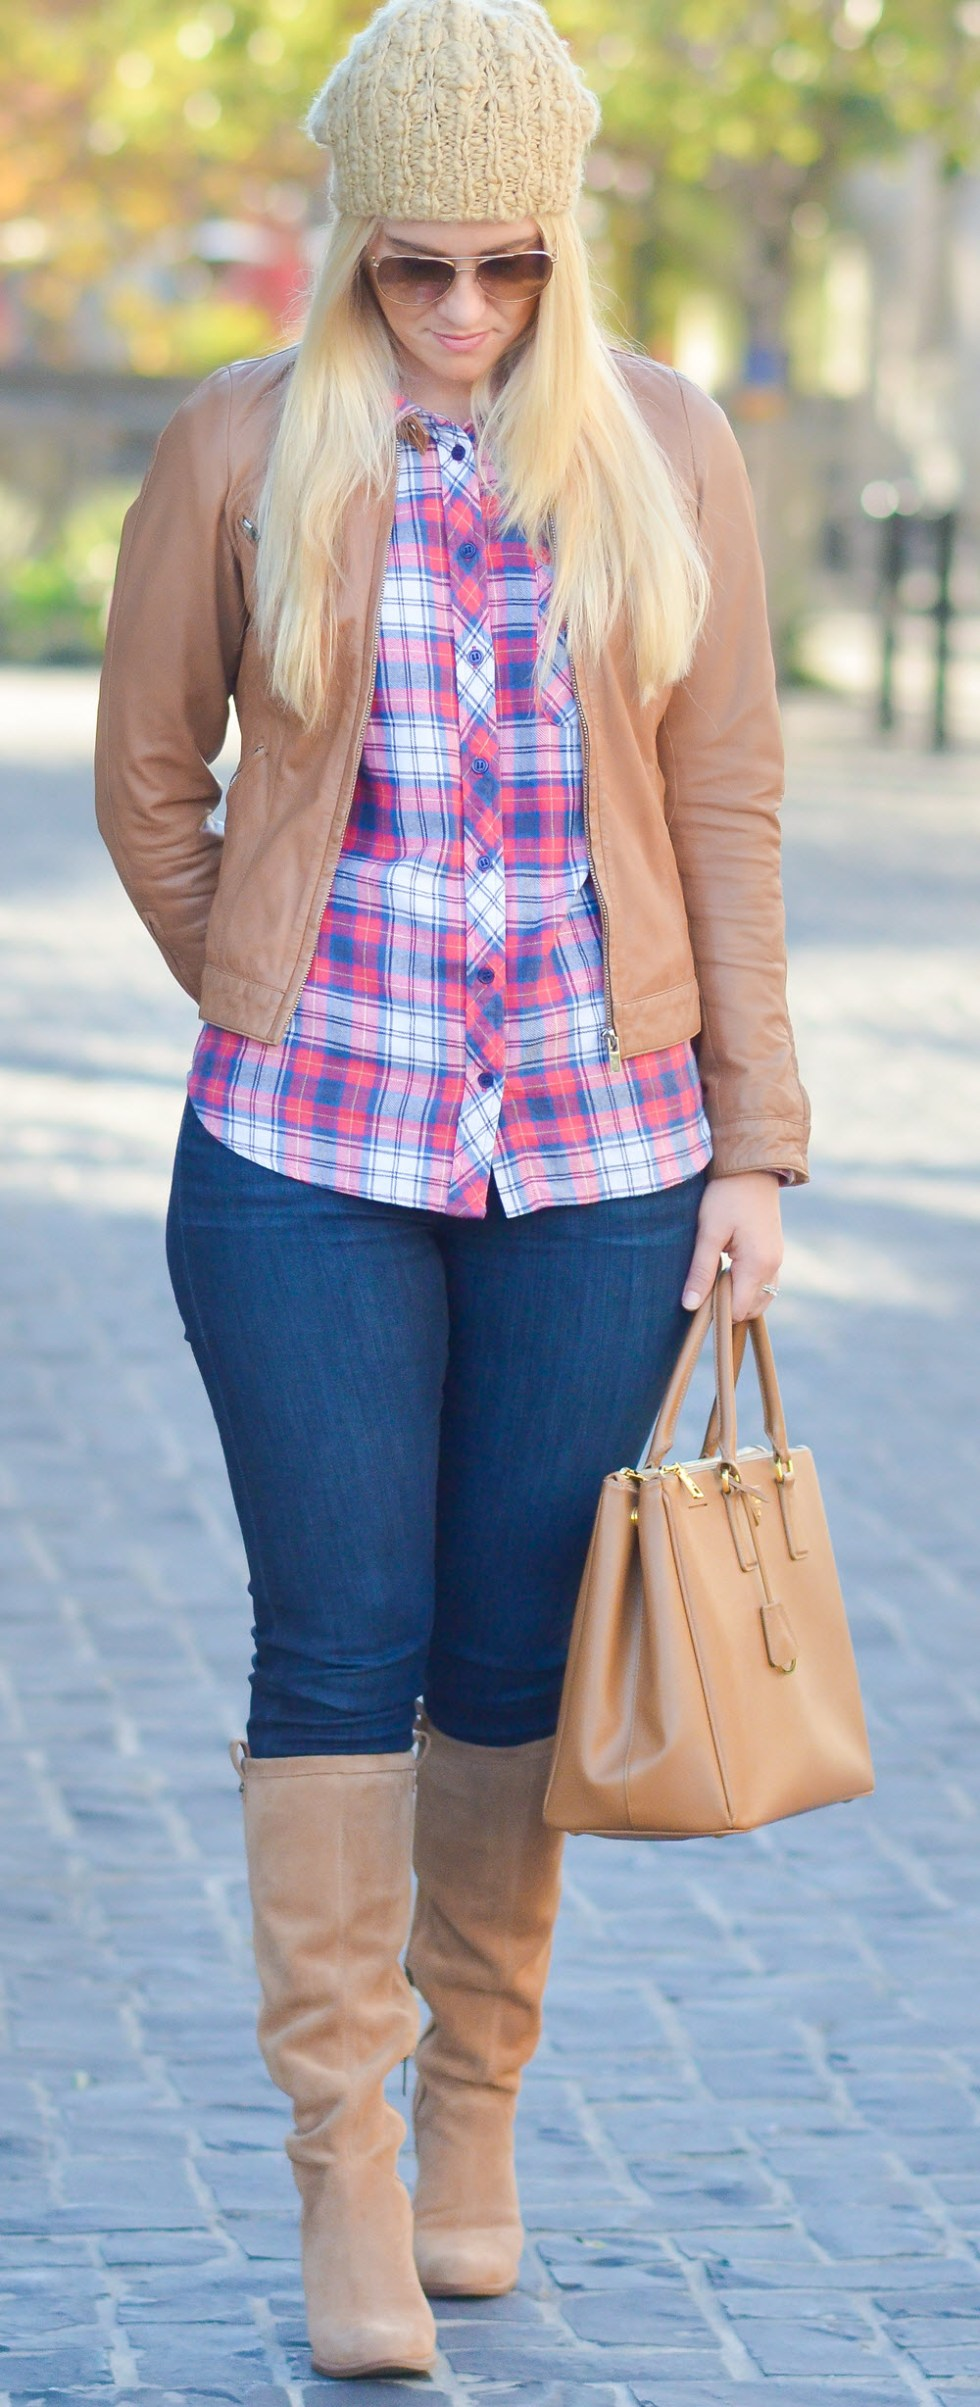 Look Chic in this Flannel Shirt Outfit with Dark Skinny Jeans and Knee High Suede Boots. A Perfect Fall Outfit Idea.